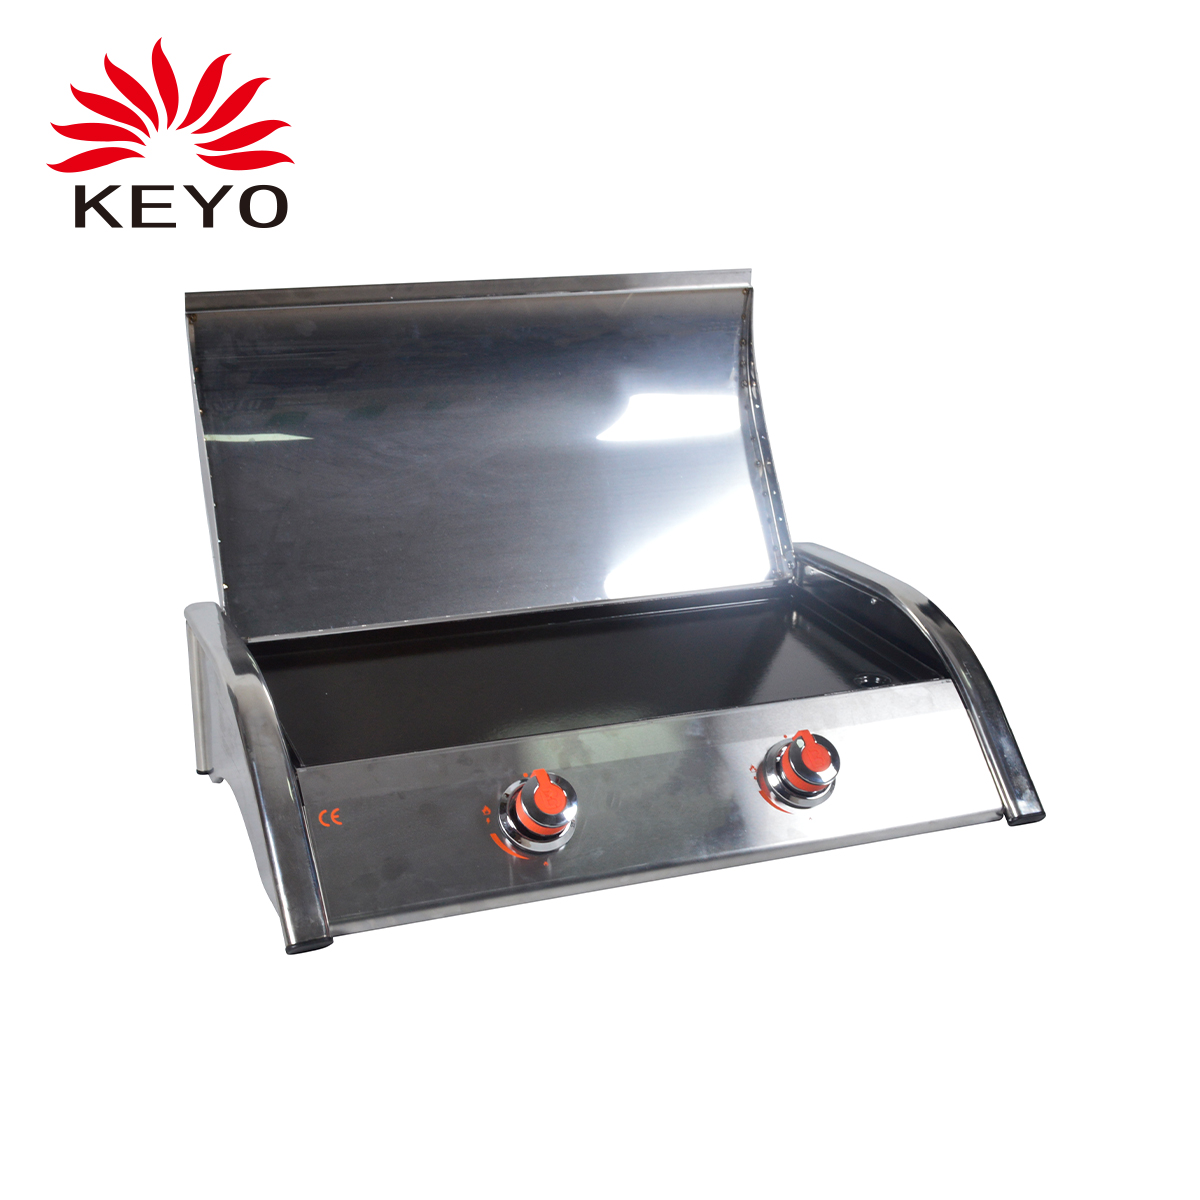 KY502G Outside Gas Grill